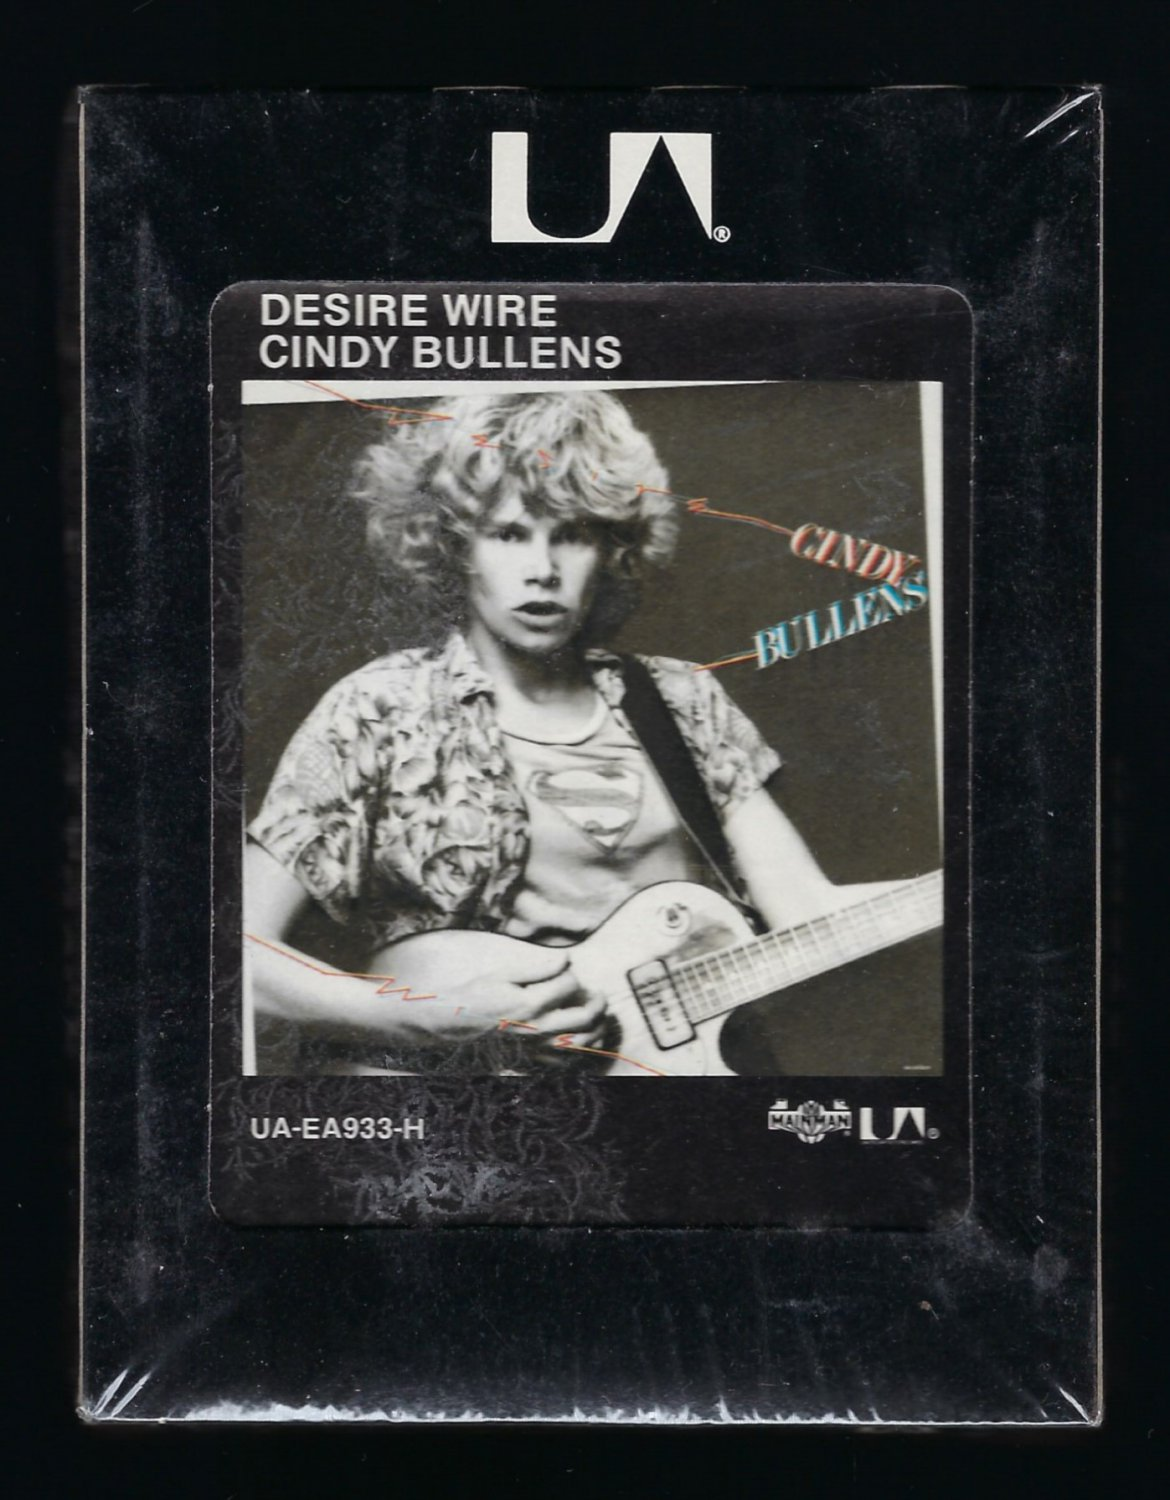 Cindy Bullens - Desire Wire 1978 Debut UA Sealed T12 8-TRACK TAPE